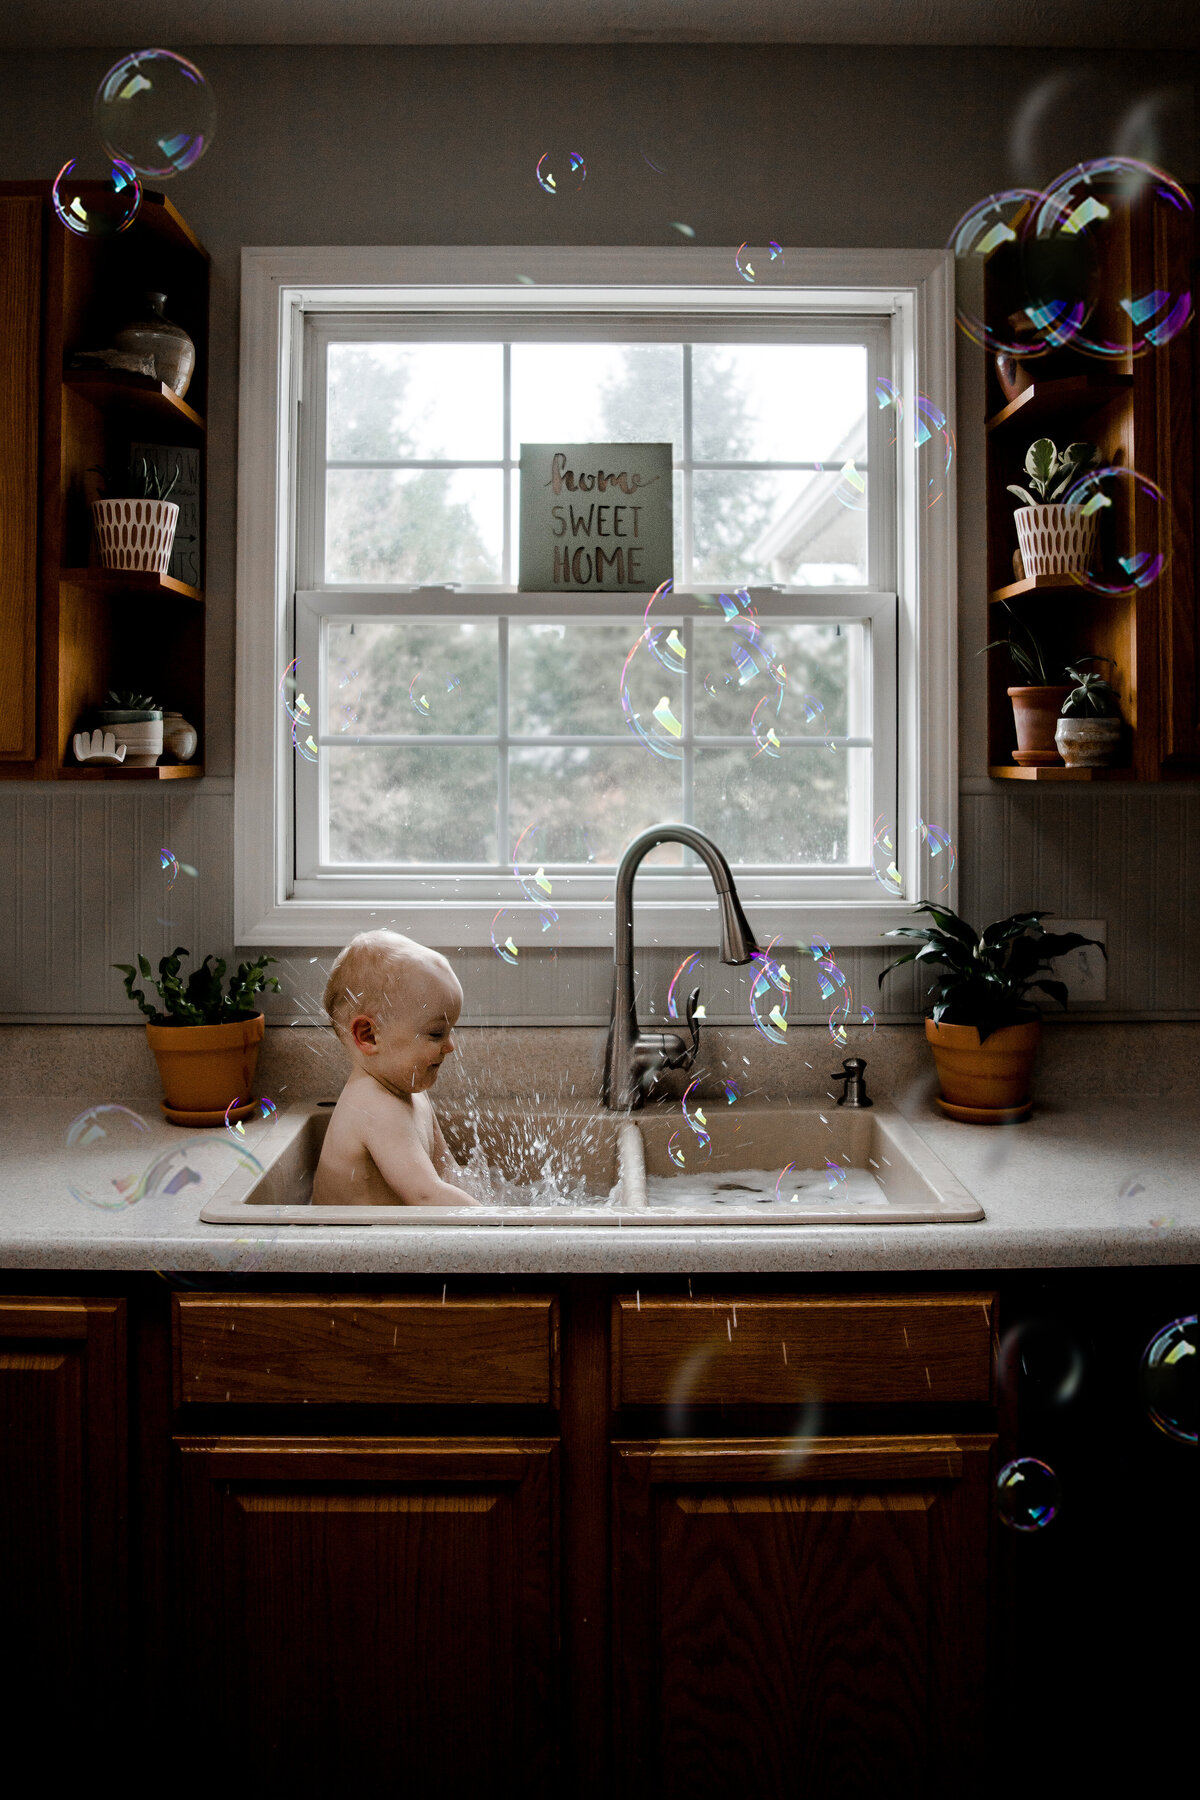 baby in sink with splashing and bubbles